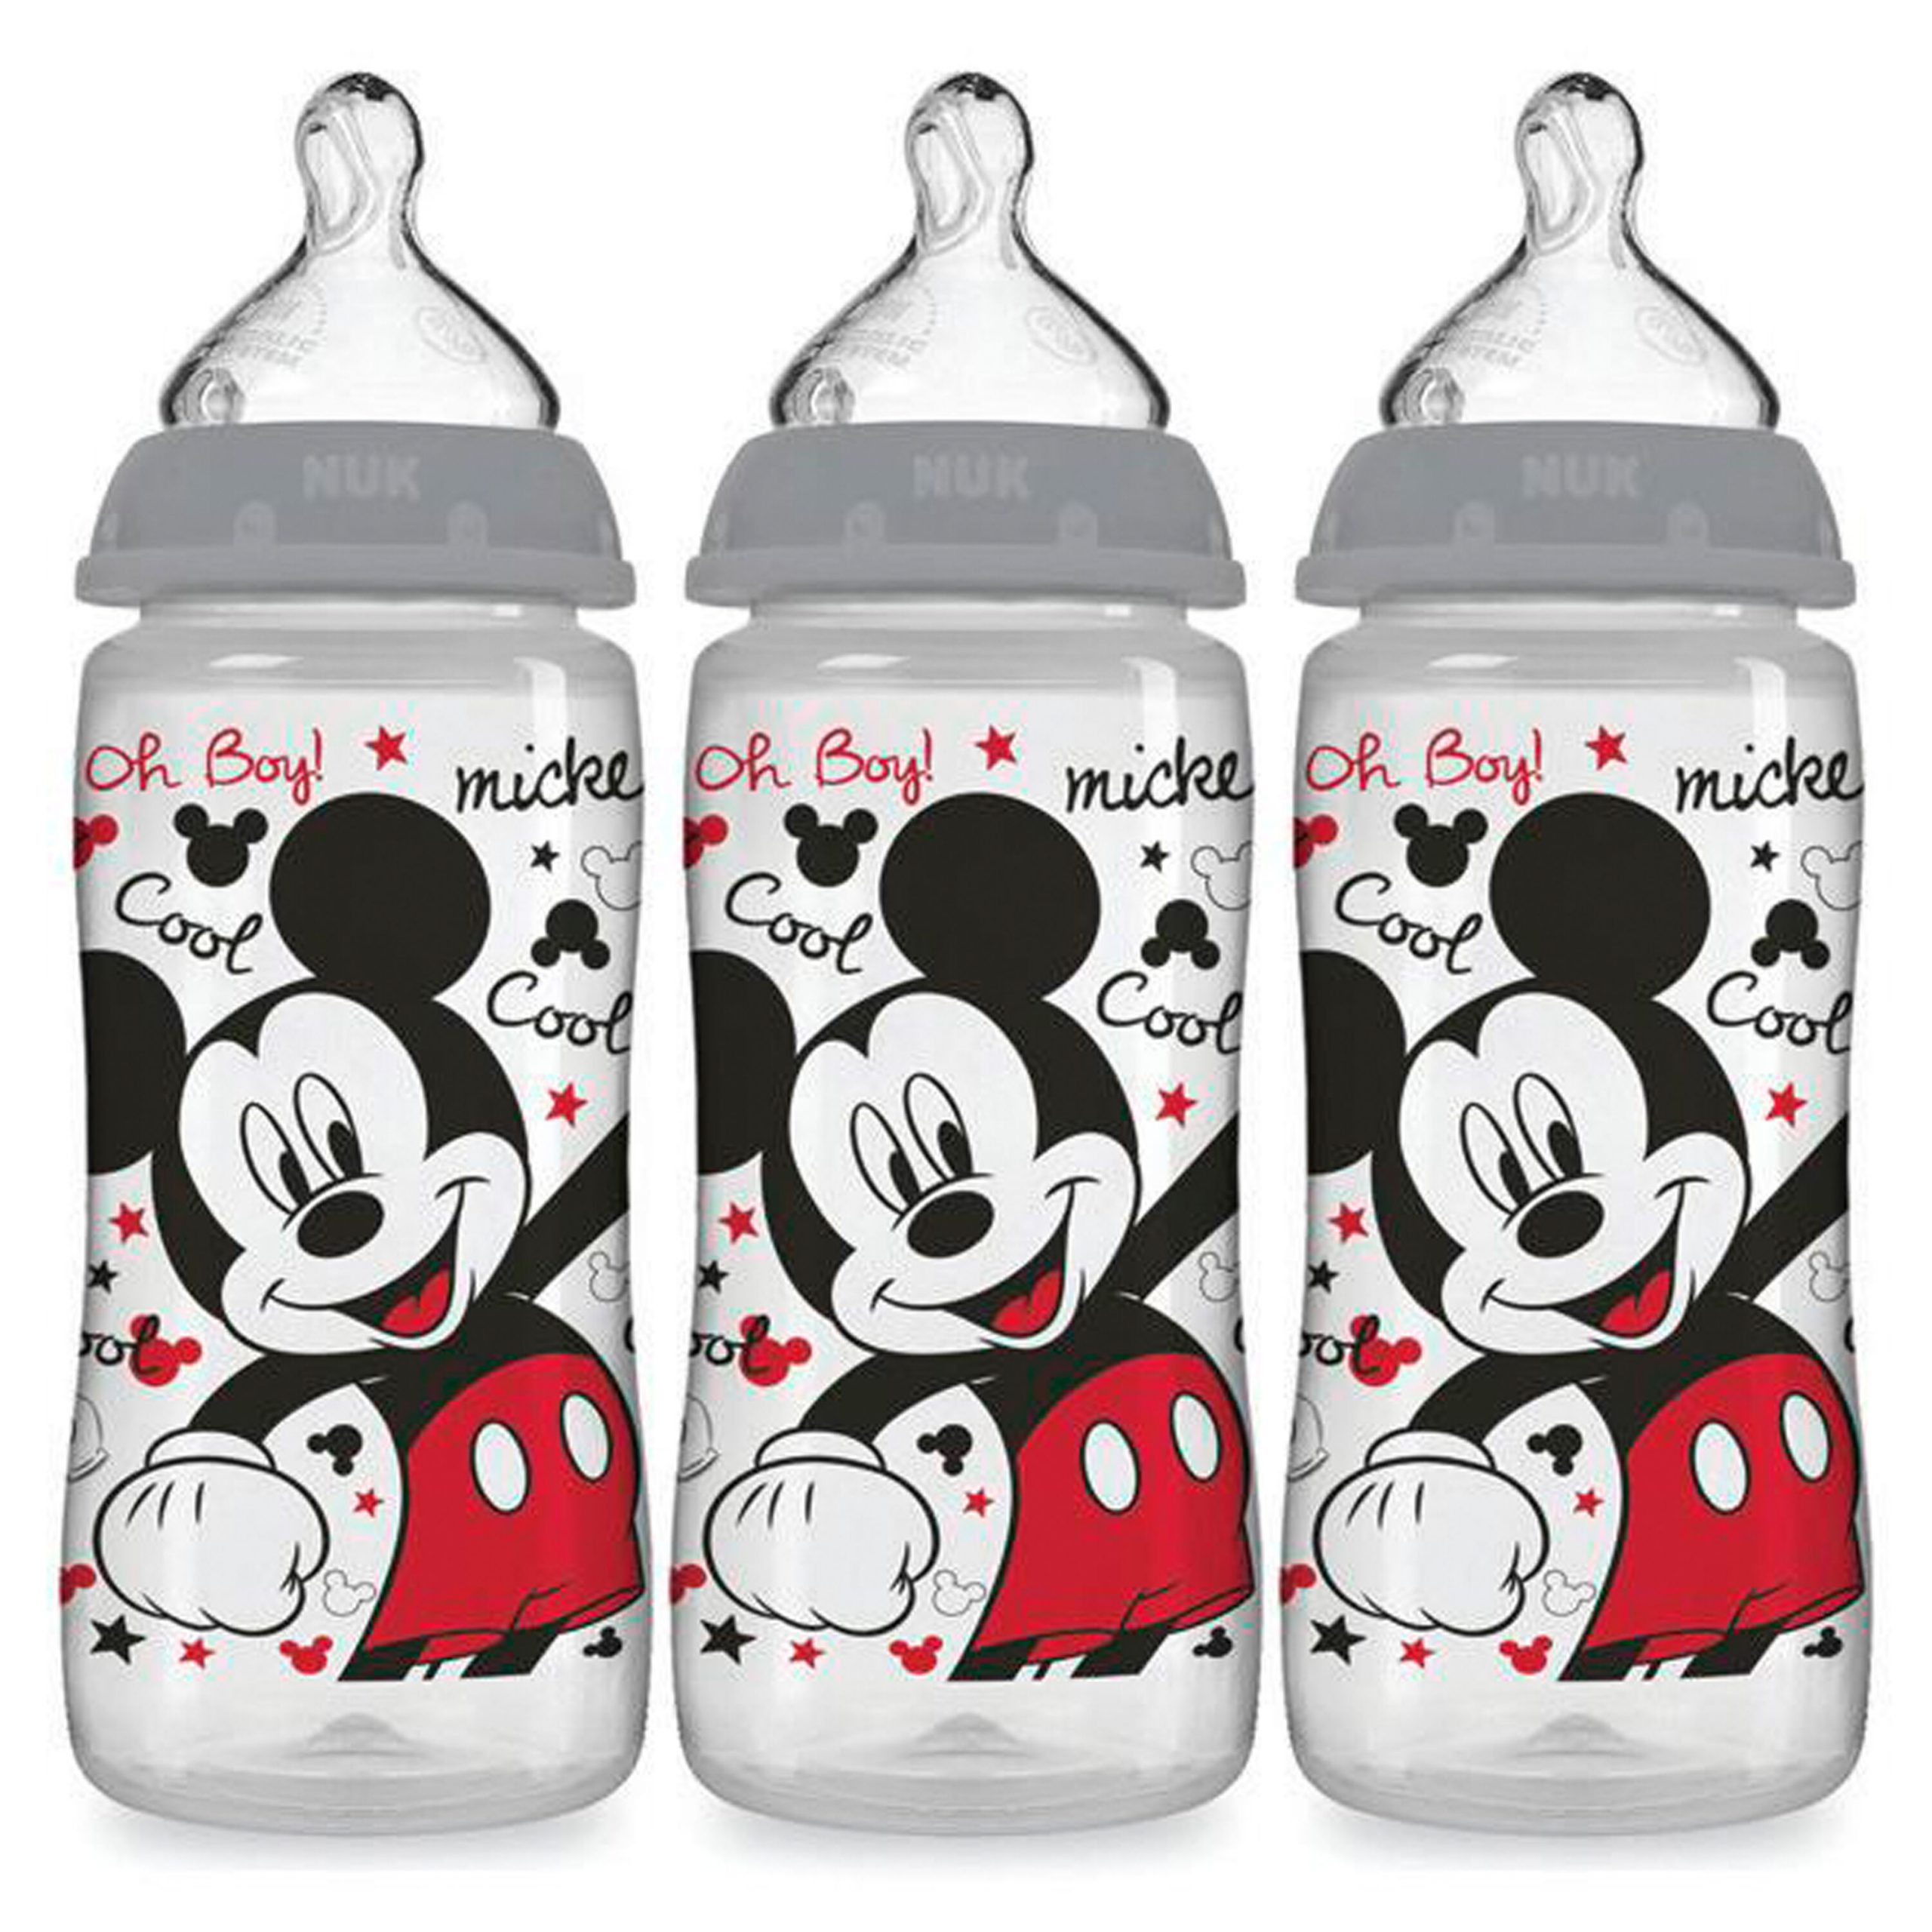 NUK® Smooth Flow Disney Bottle, Mickey Mouse, 10 oz, 3-Pack Product Image 1 of 9